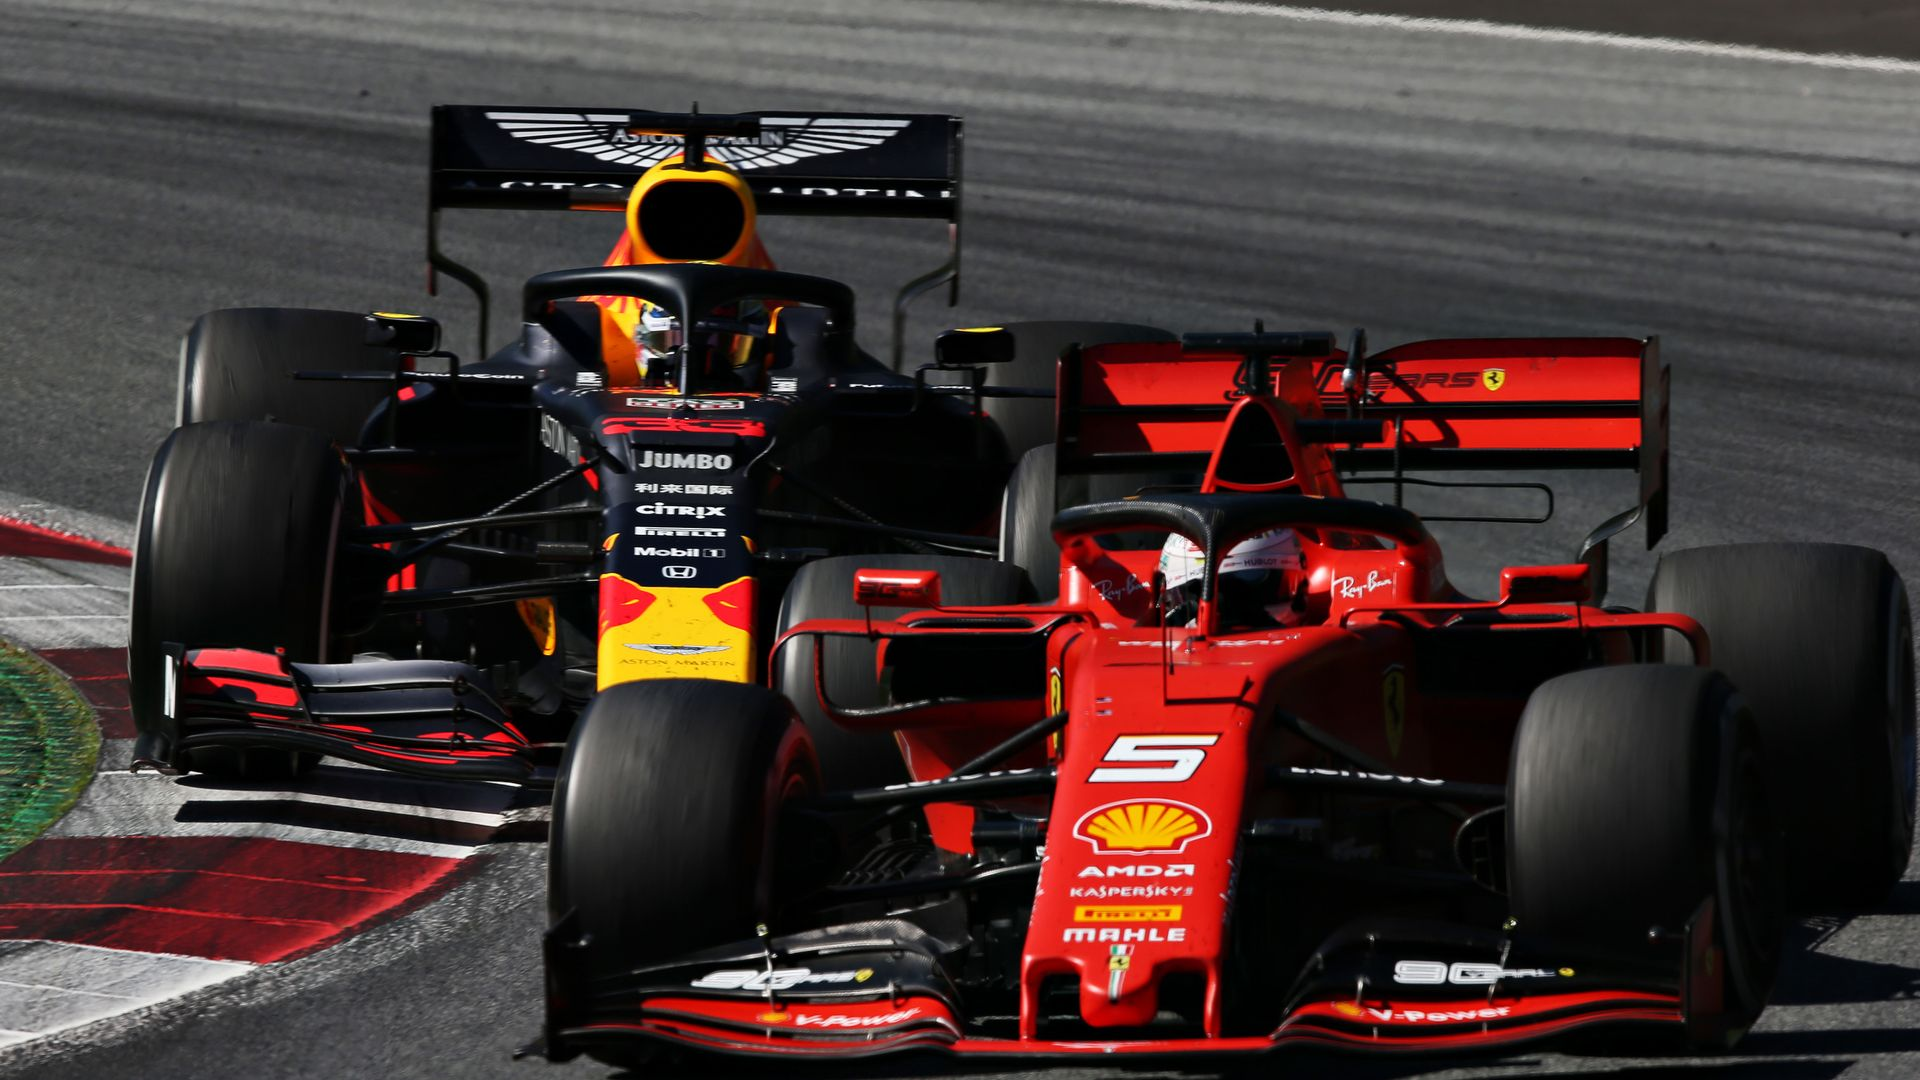 Austria set to open F1 season with two races in July